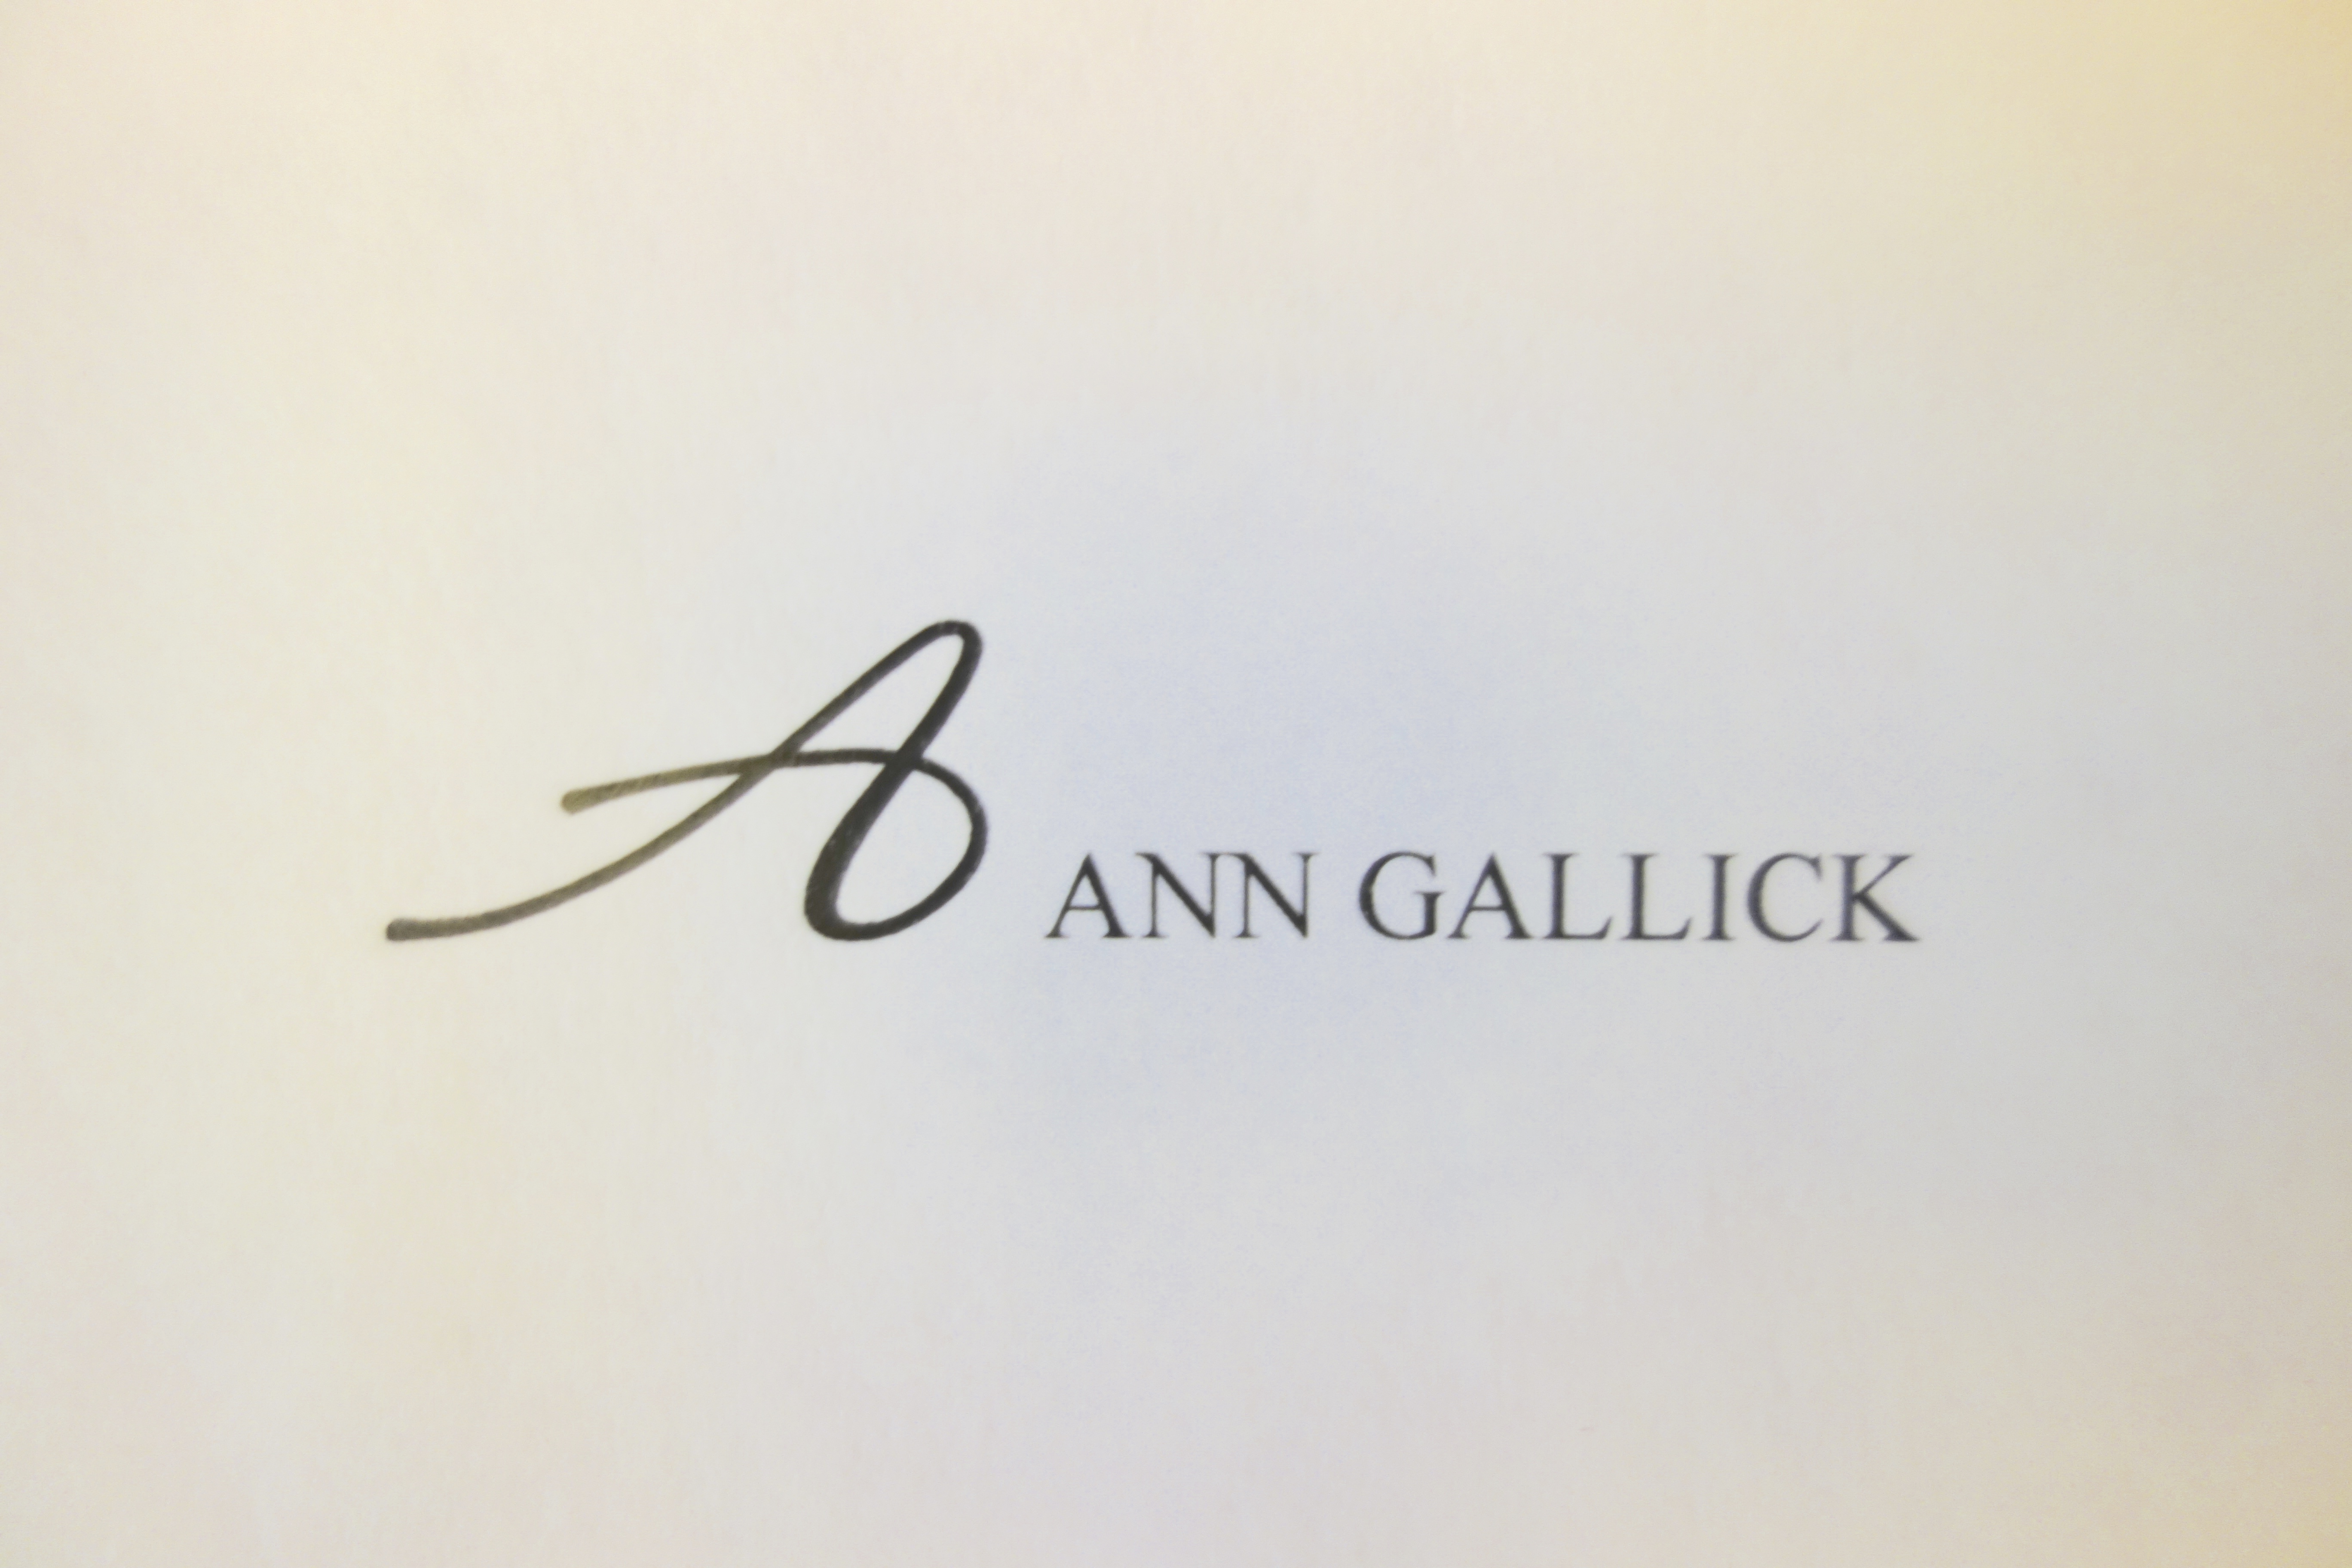 Ann Gallick Signature